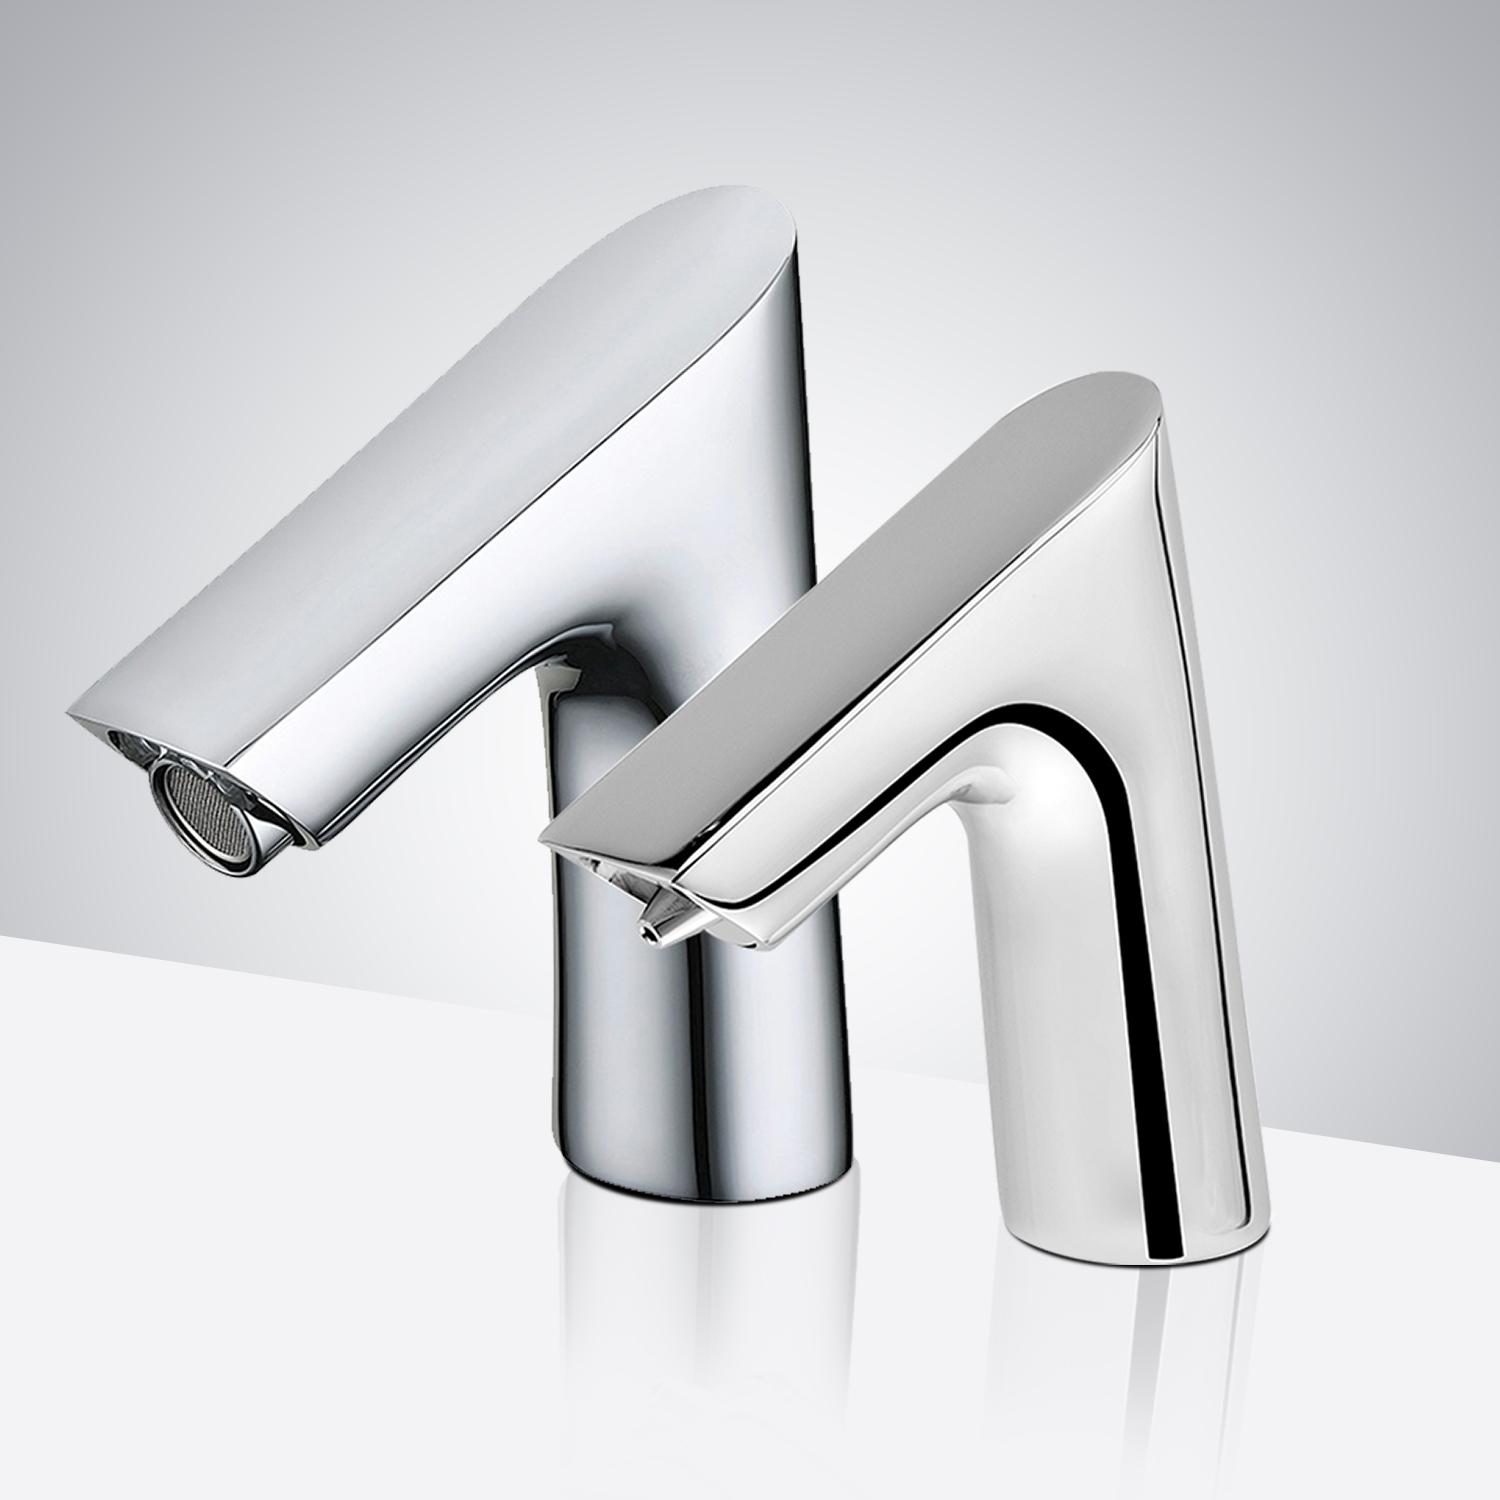 Fontana Dijon Commercial High Quality Touchless White Motion Sensor Faucet & Automatic Soap Dispenser for Restrooms